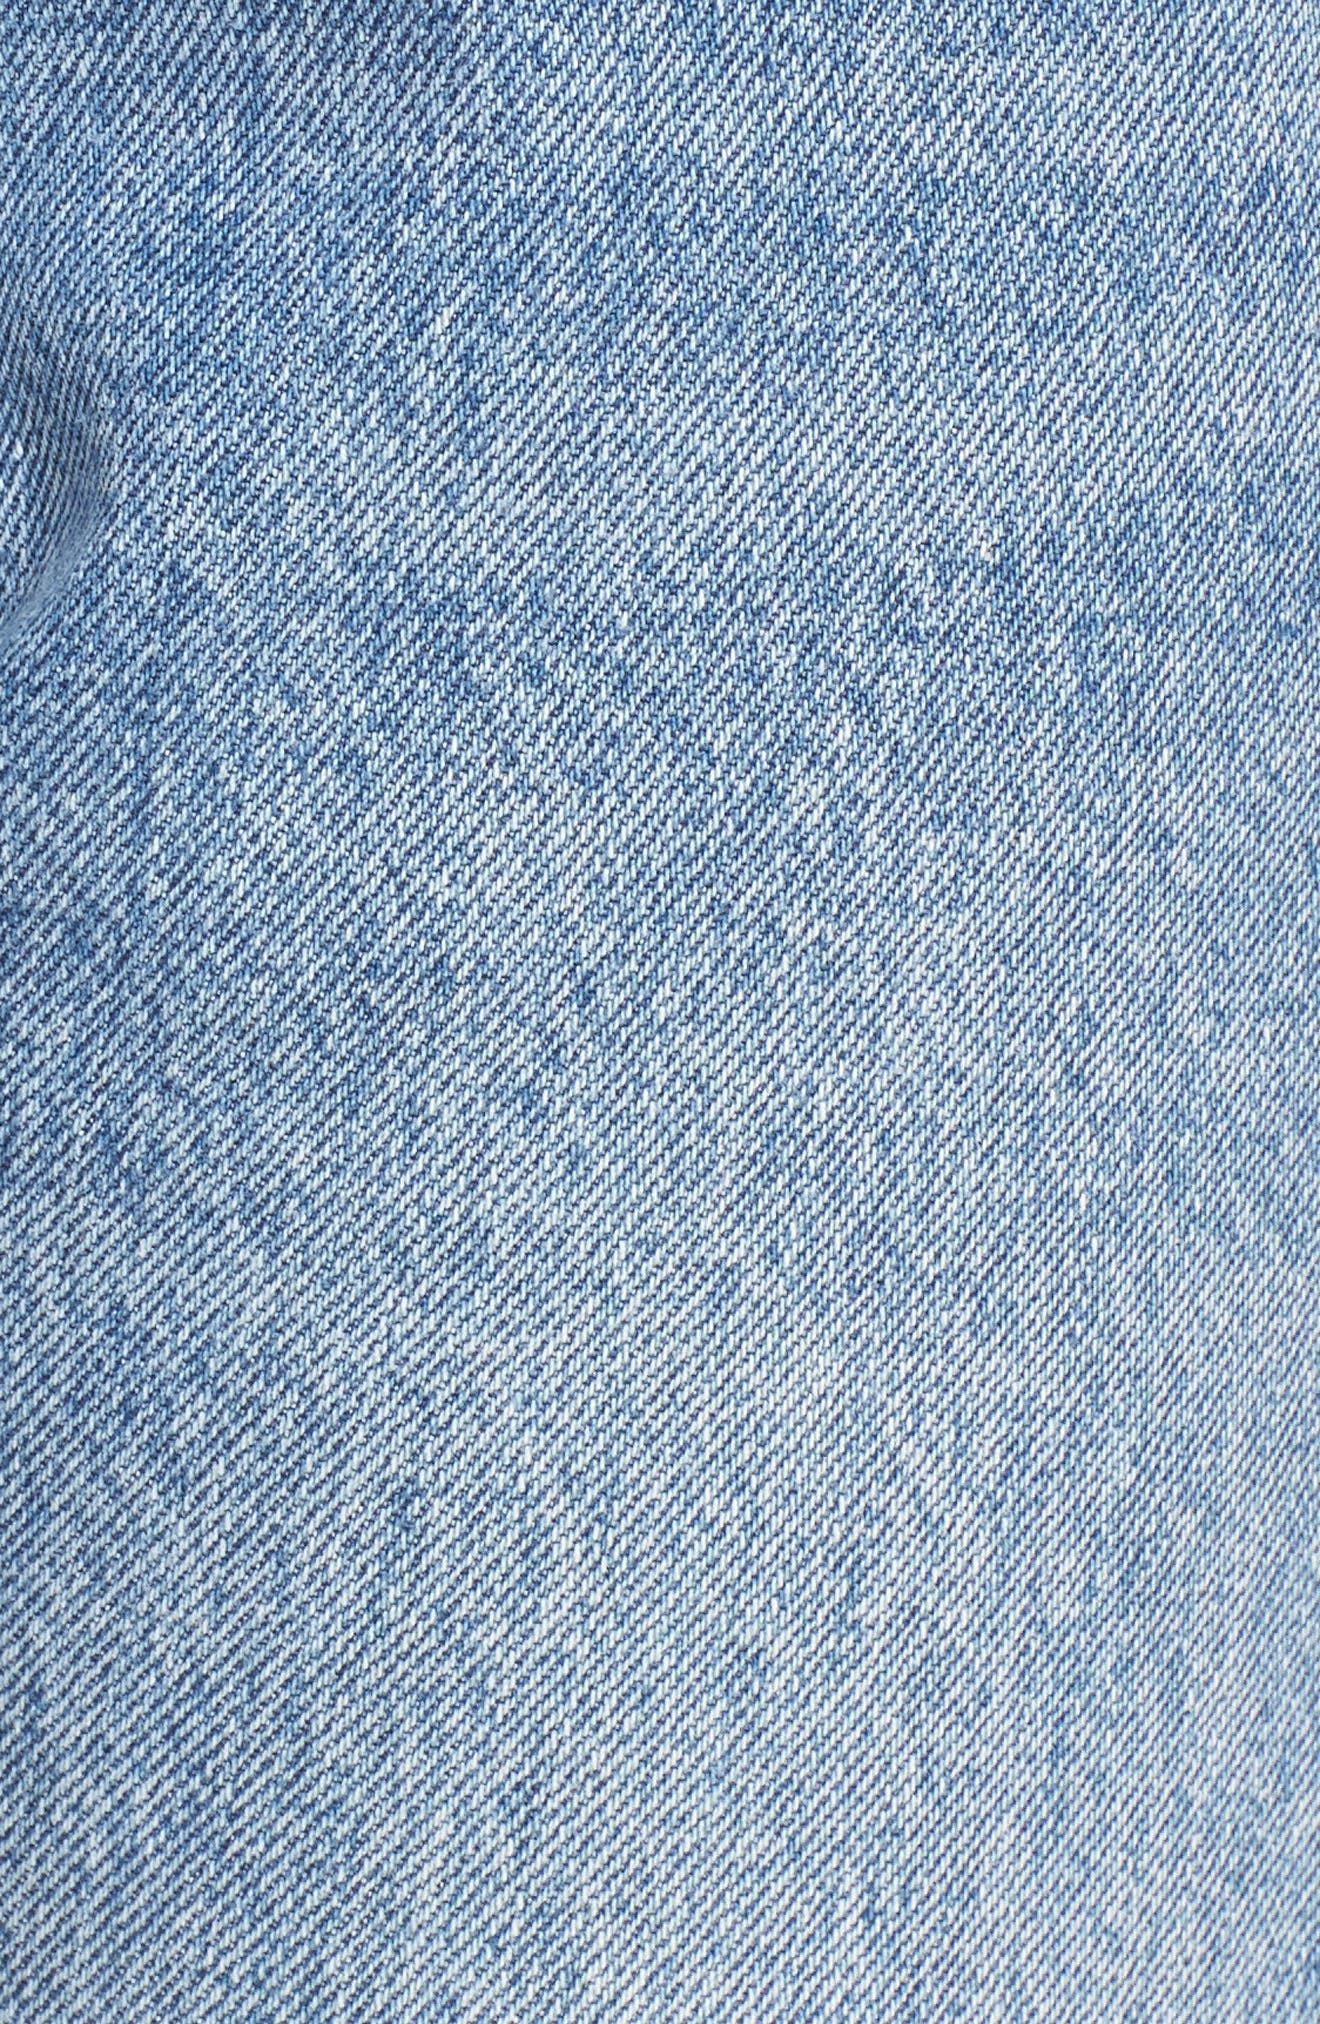 LEVI'S<SUP>®</SUP>, Levis<sup>®</sup> 501 Ripped Skinny Jeans, Alternate thumbnail 5, color, 400